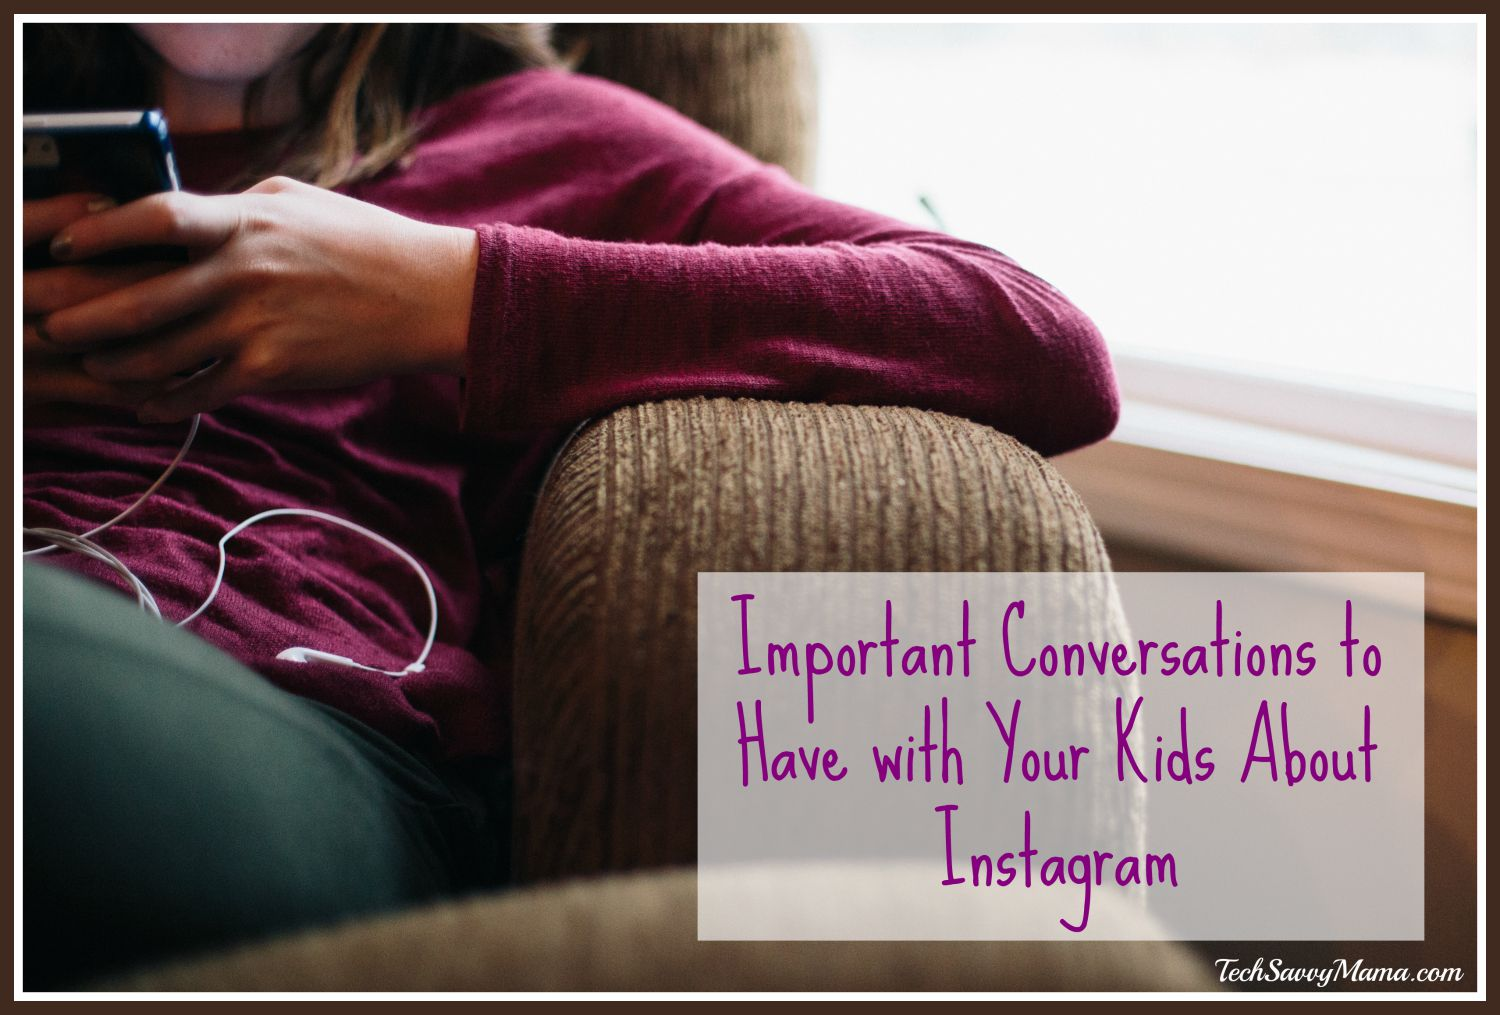 Important Conversations to Have with Your Kids About Instagram